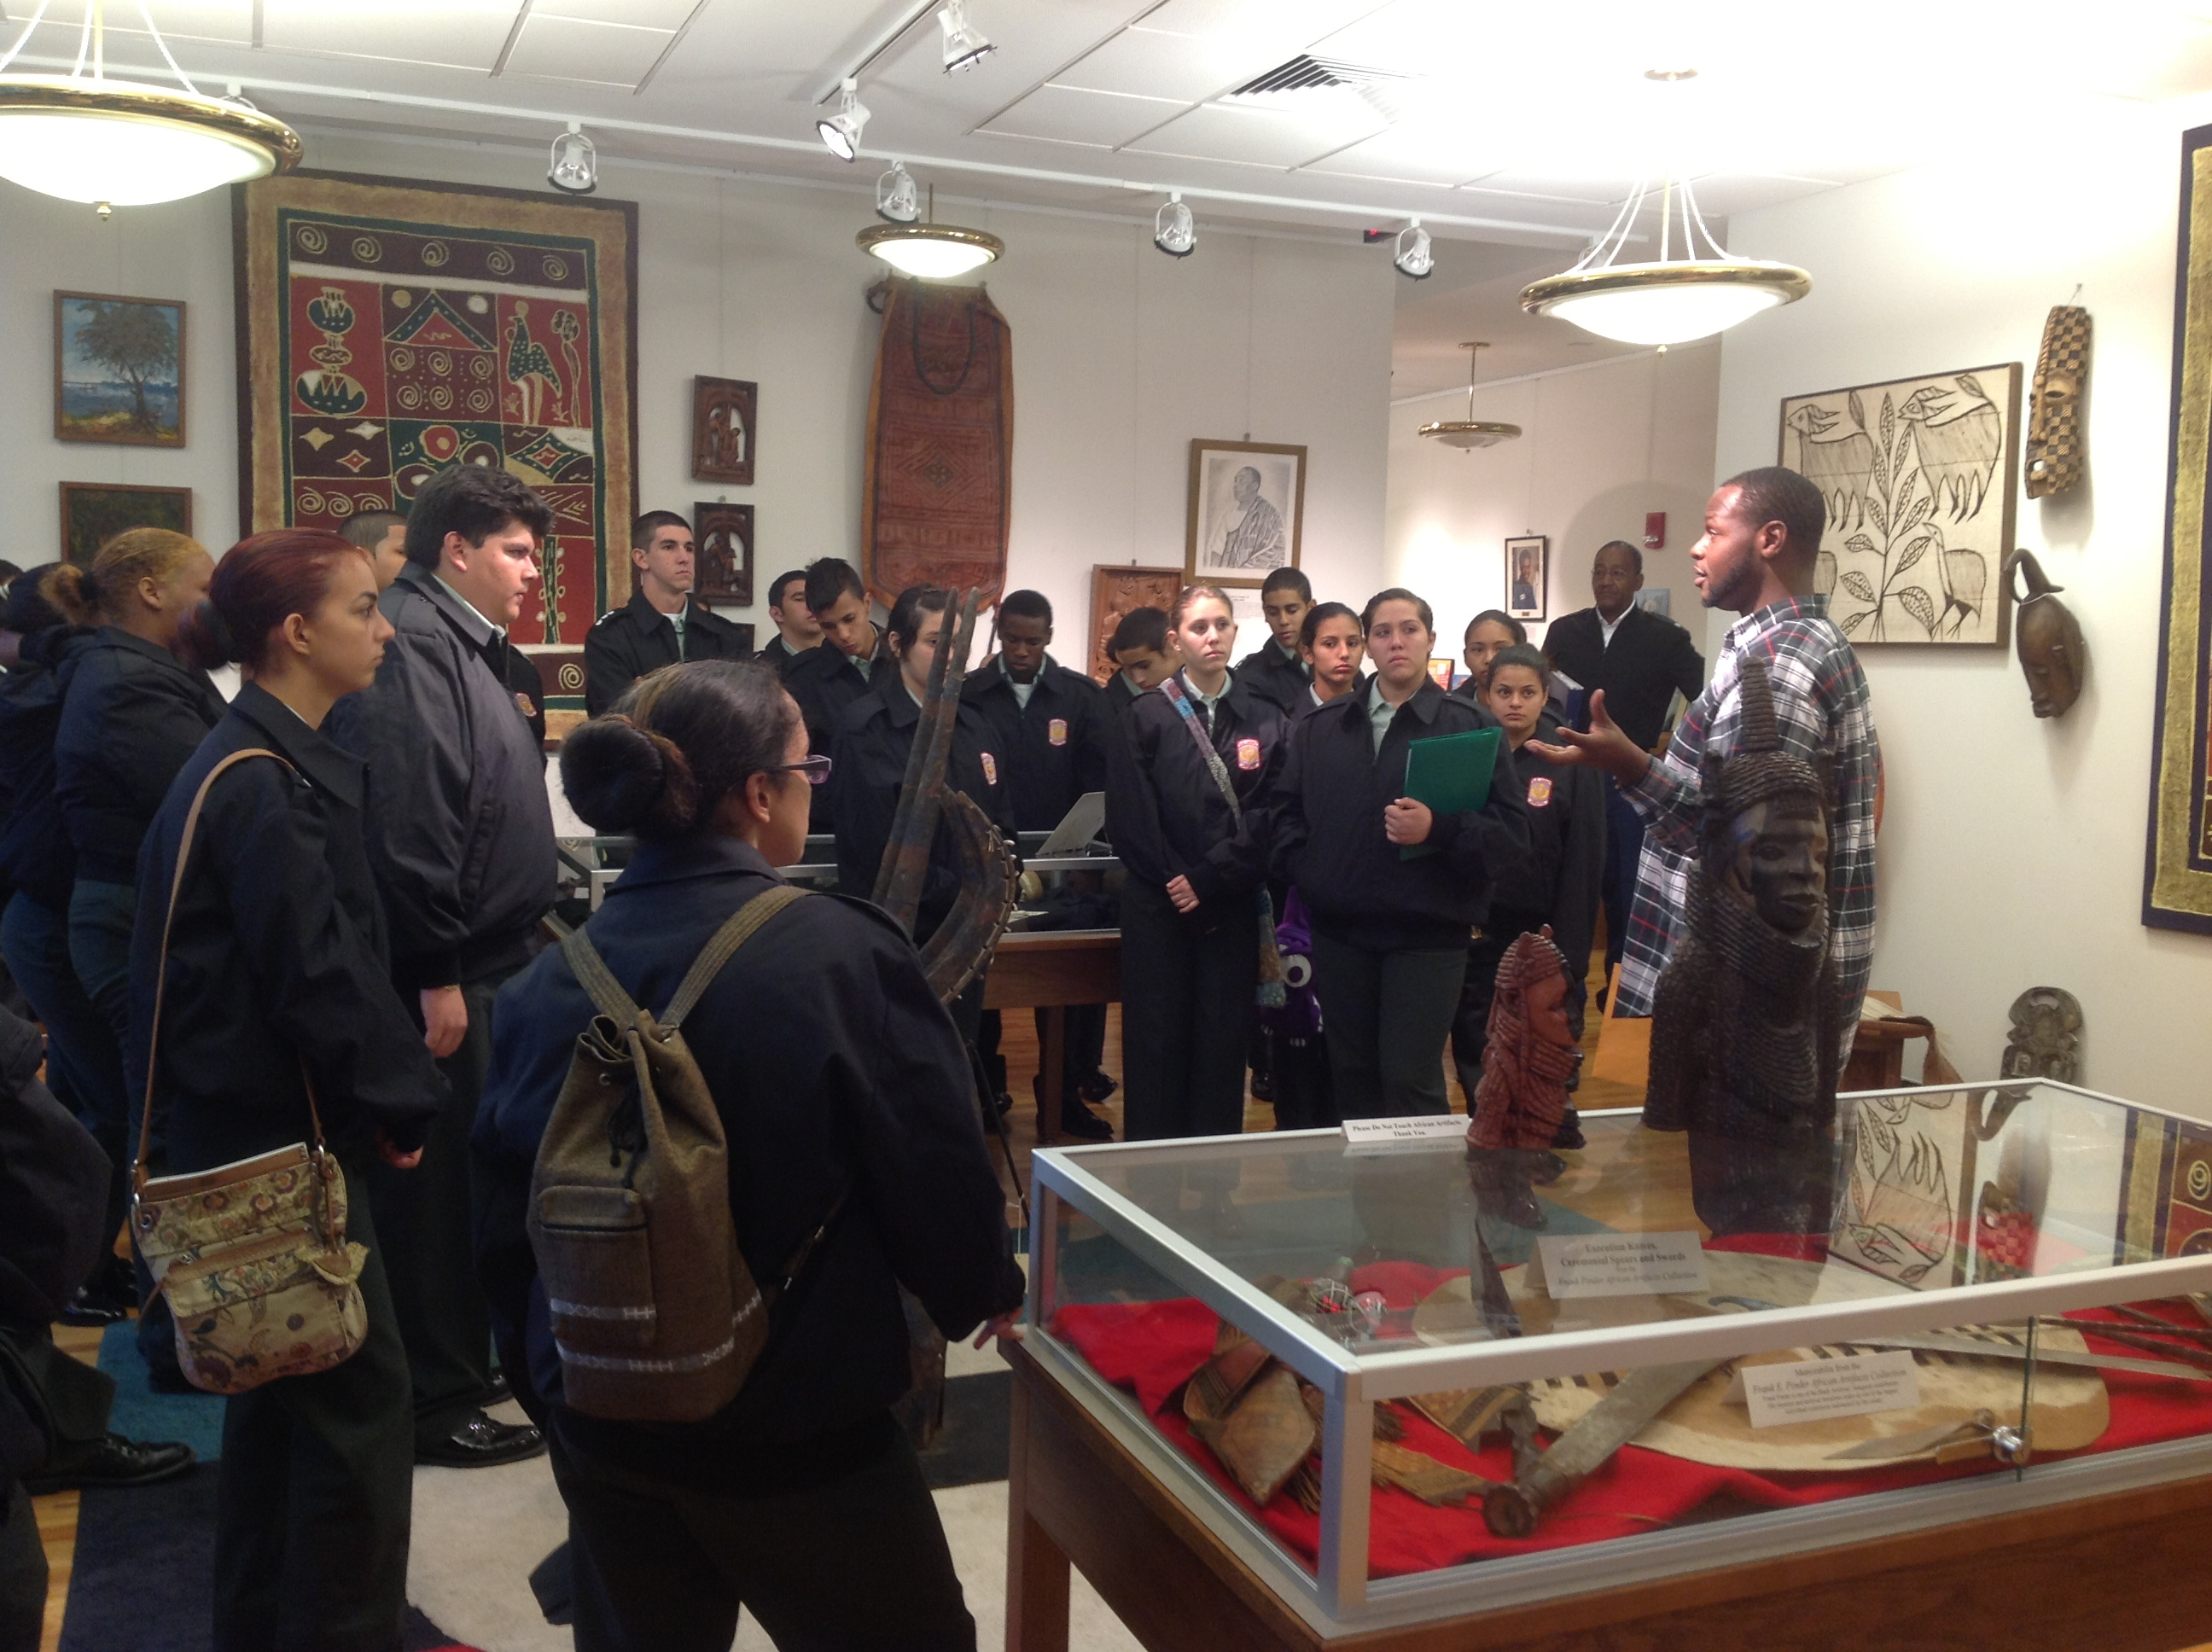 I AMM Fellow gives a tour to students visiting the museum.